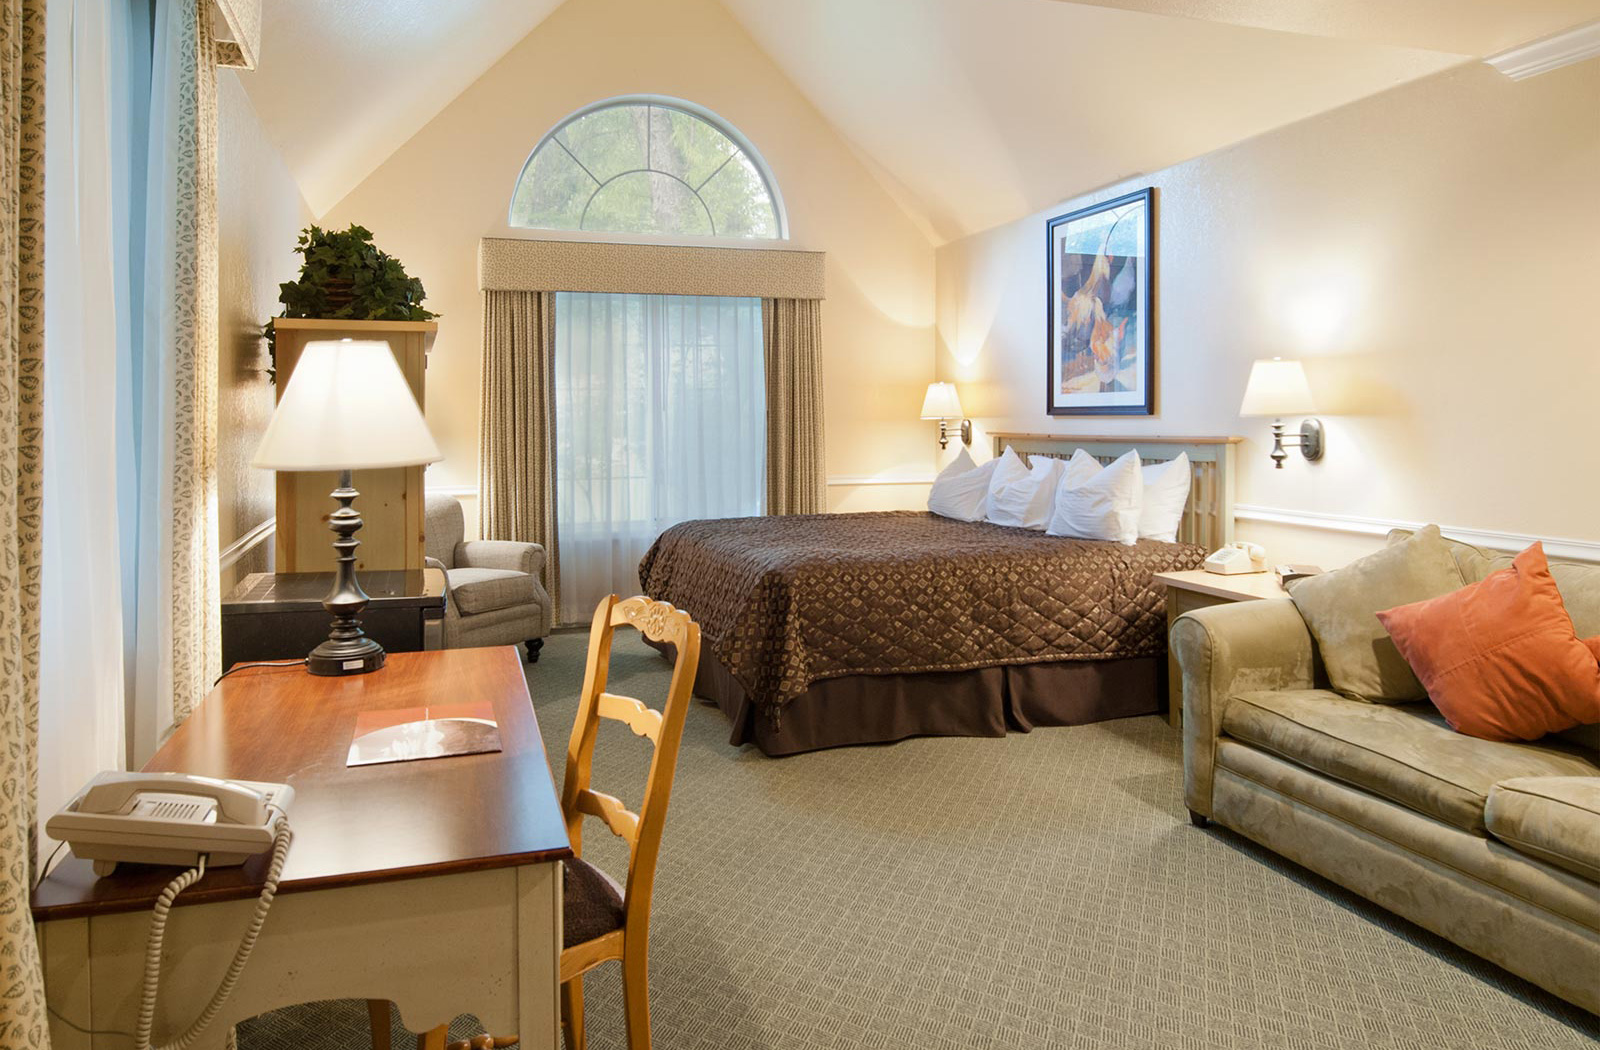 One of our well appointed hotel suites in Midway with bed, couch, desk and more